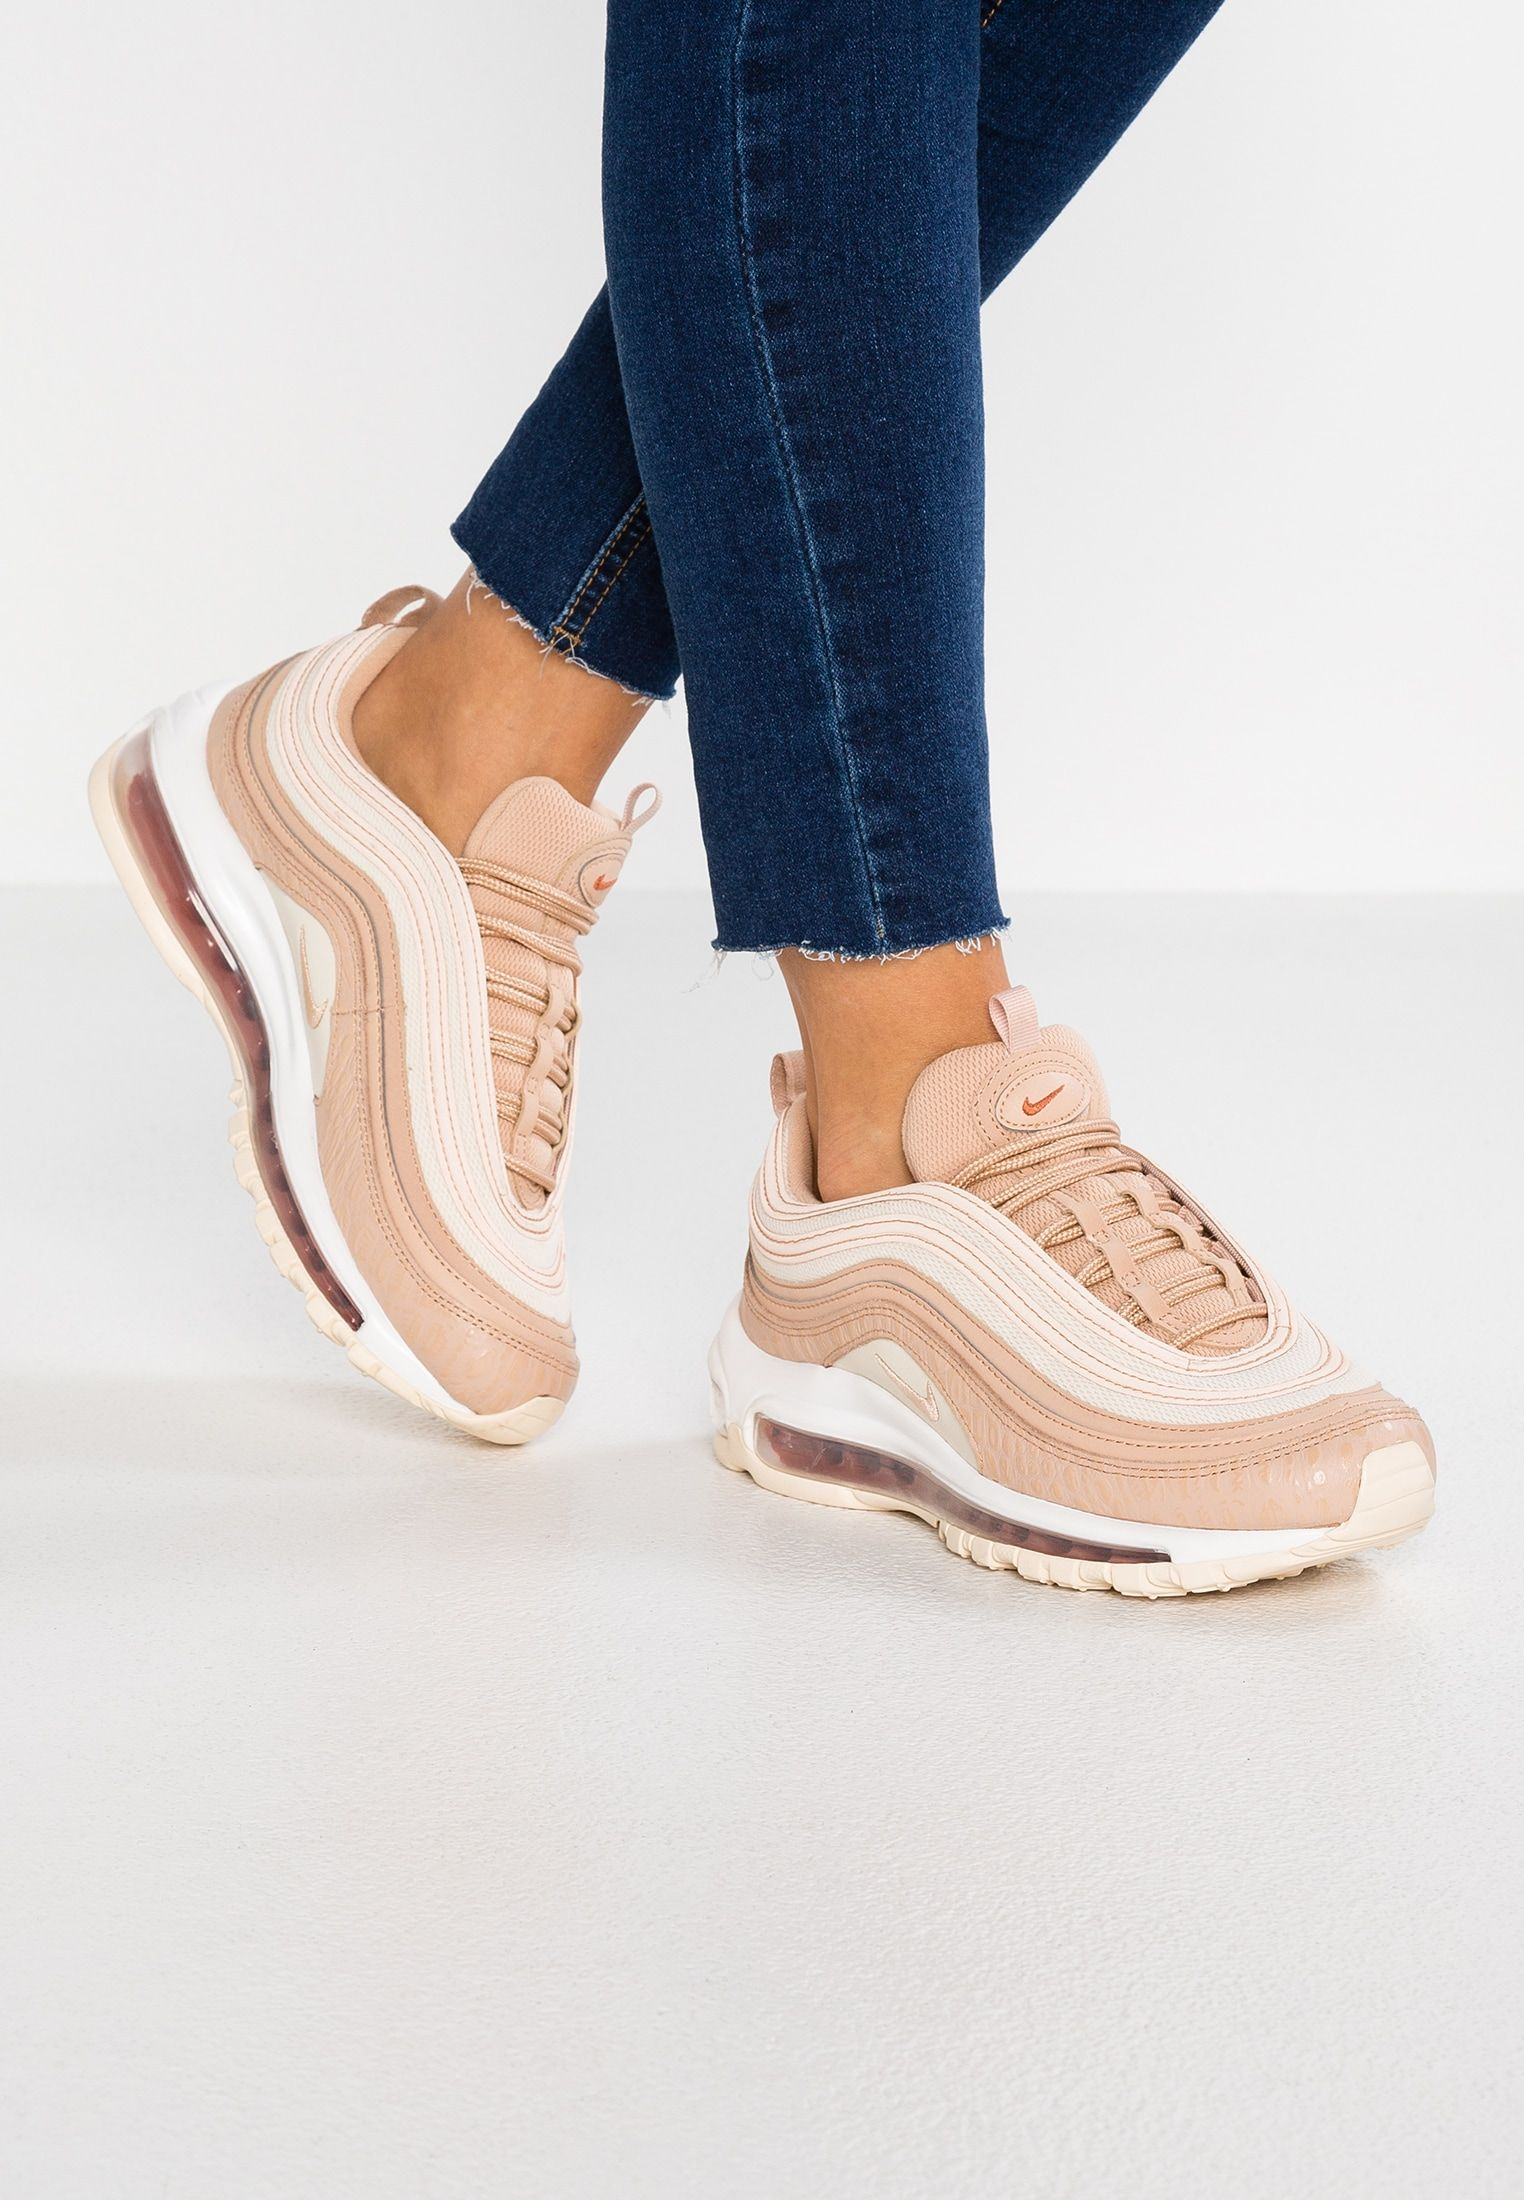 AIR MAX 97 LX Trainers bio beigelight carbondusty